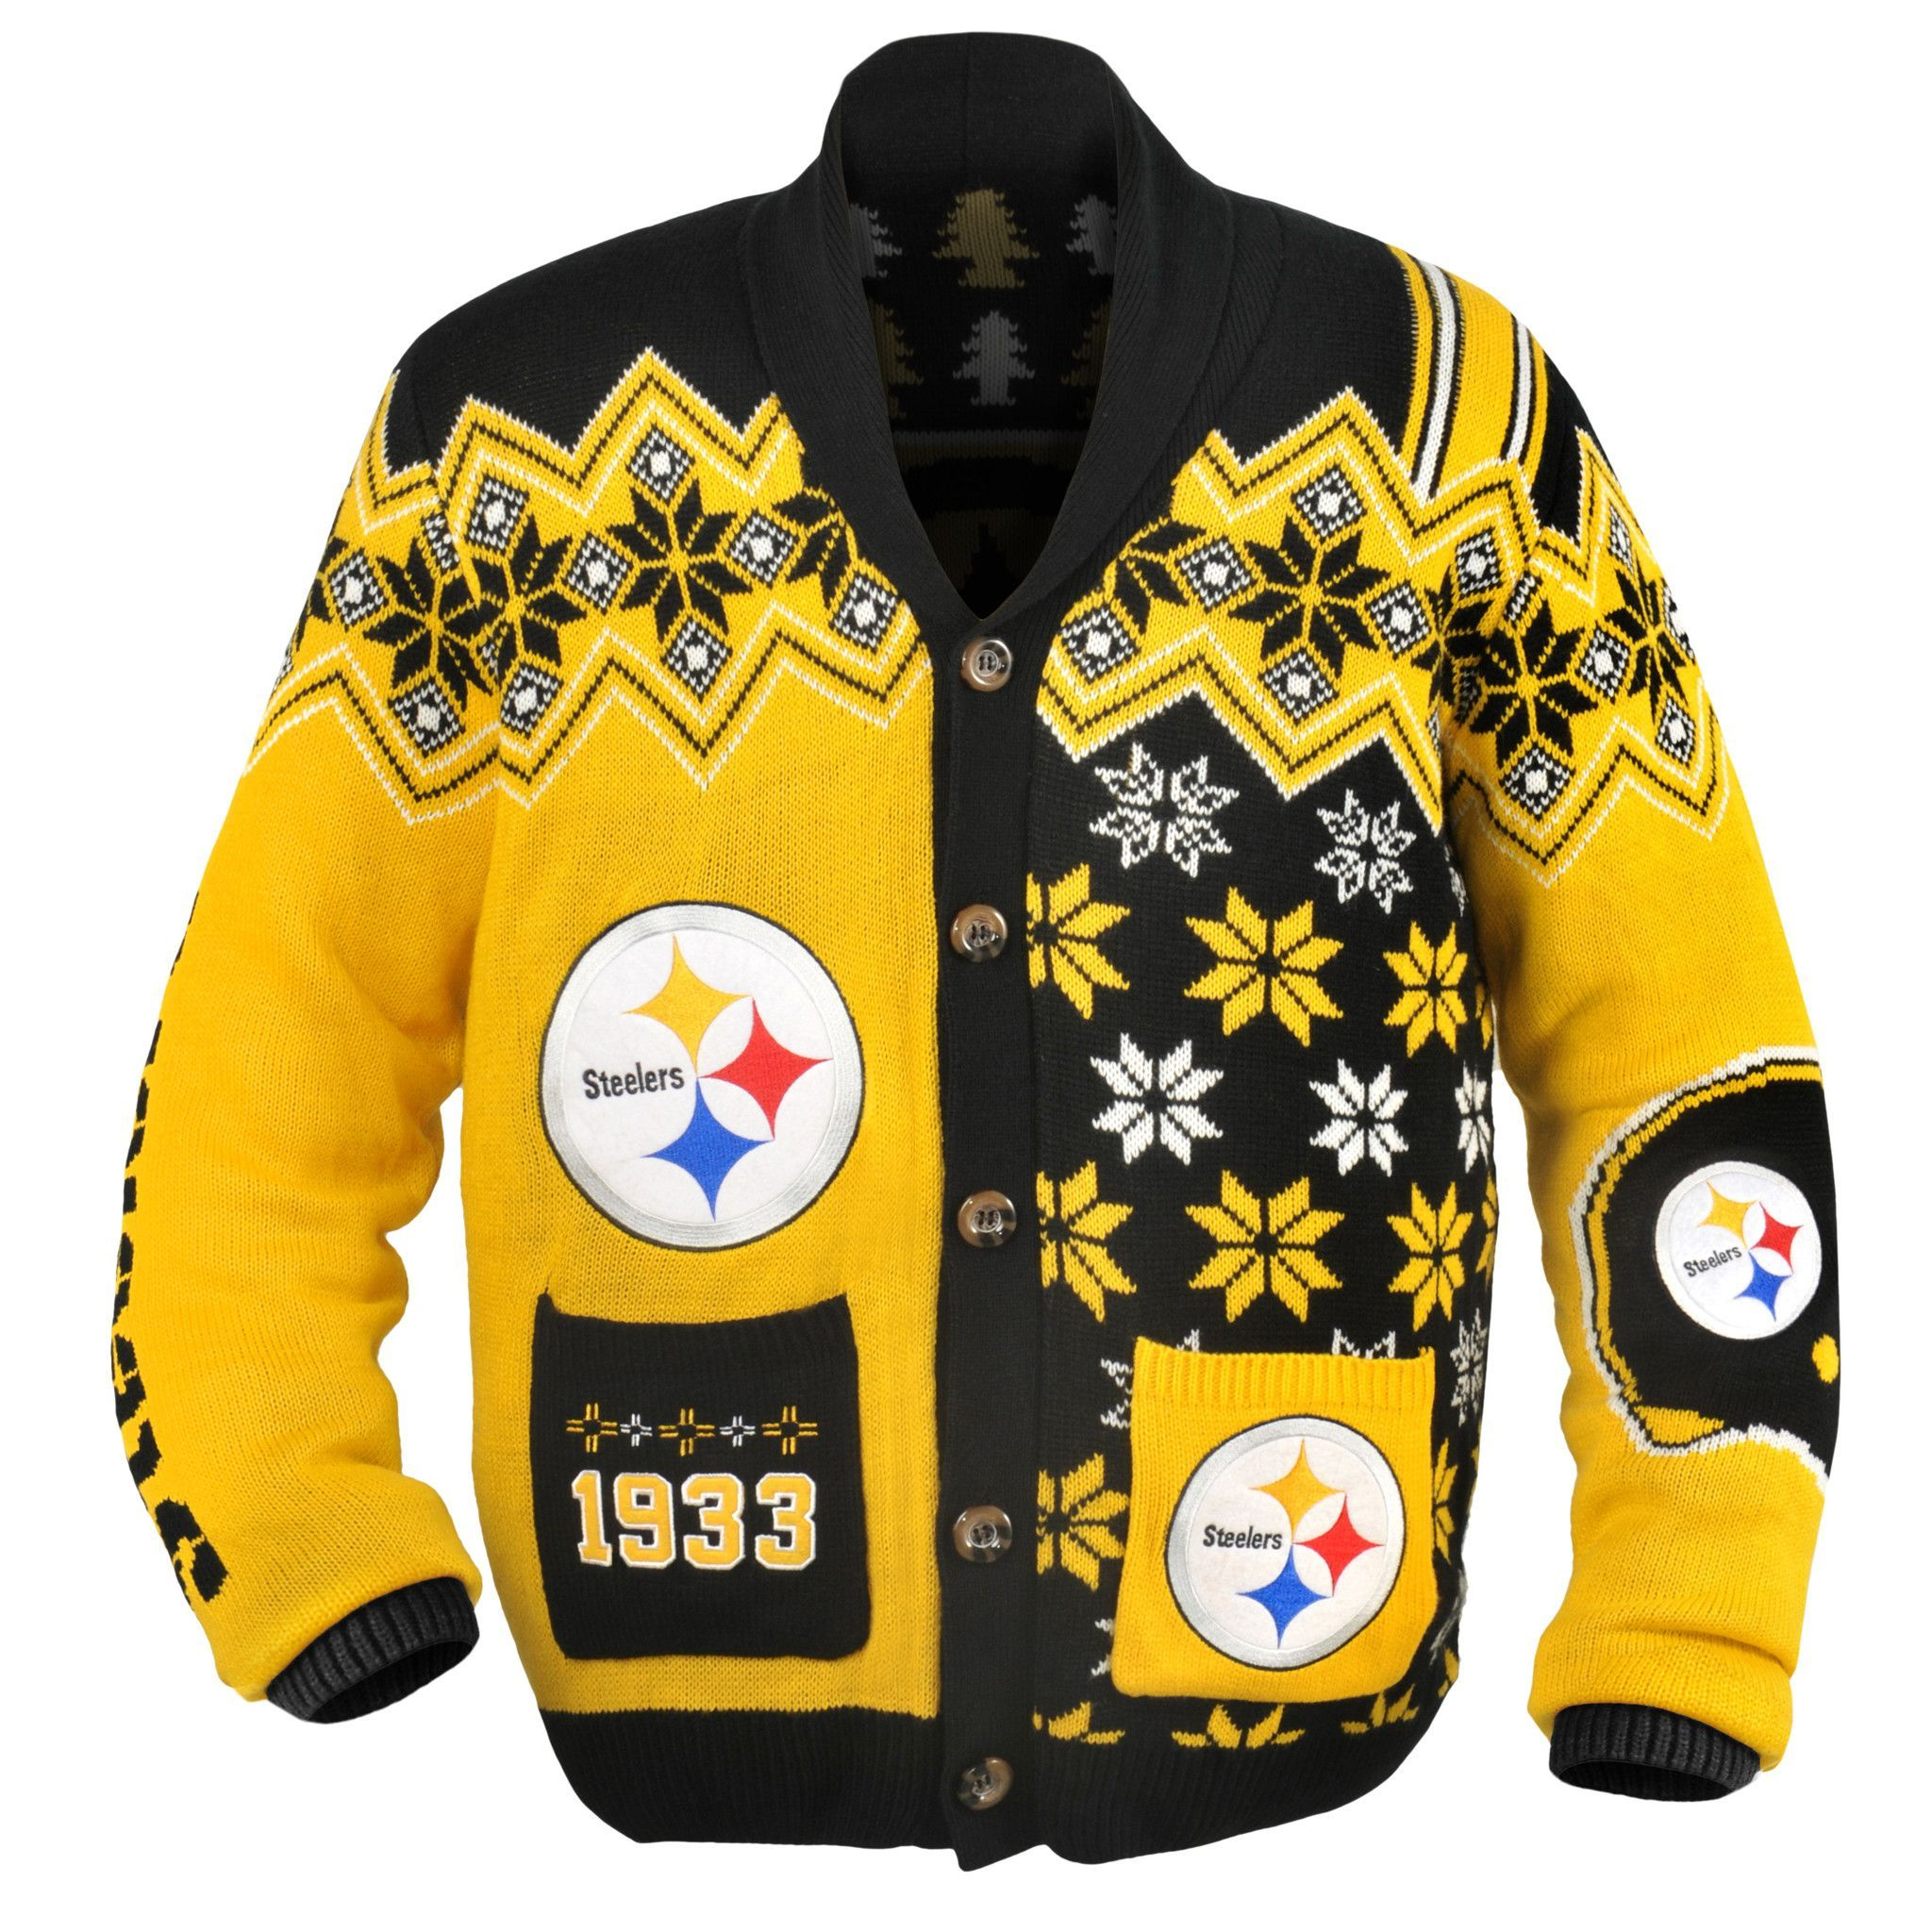 hot sale online a2bb9 492db Pittsburgh Steelers NFL Adult Ugly Cardigan Sweater | shit i ...